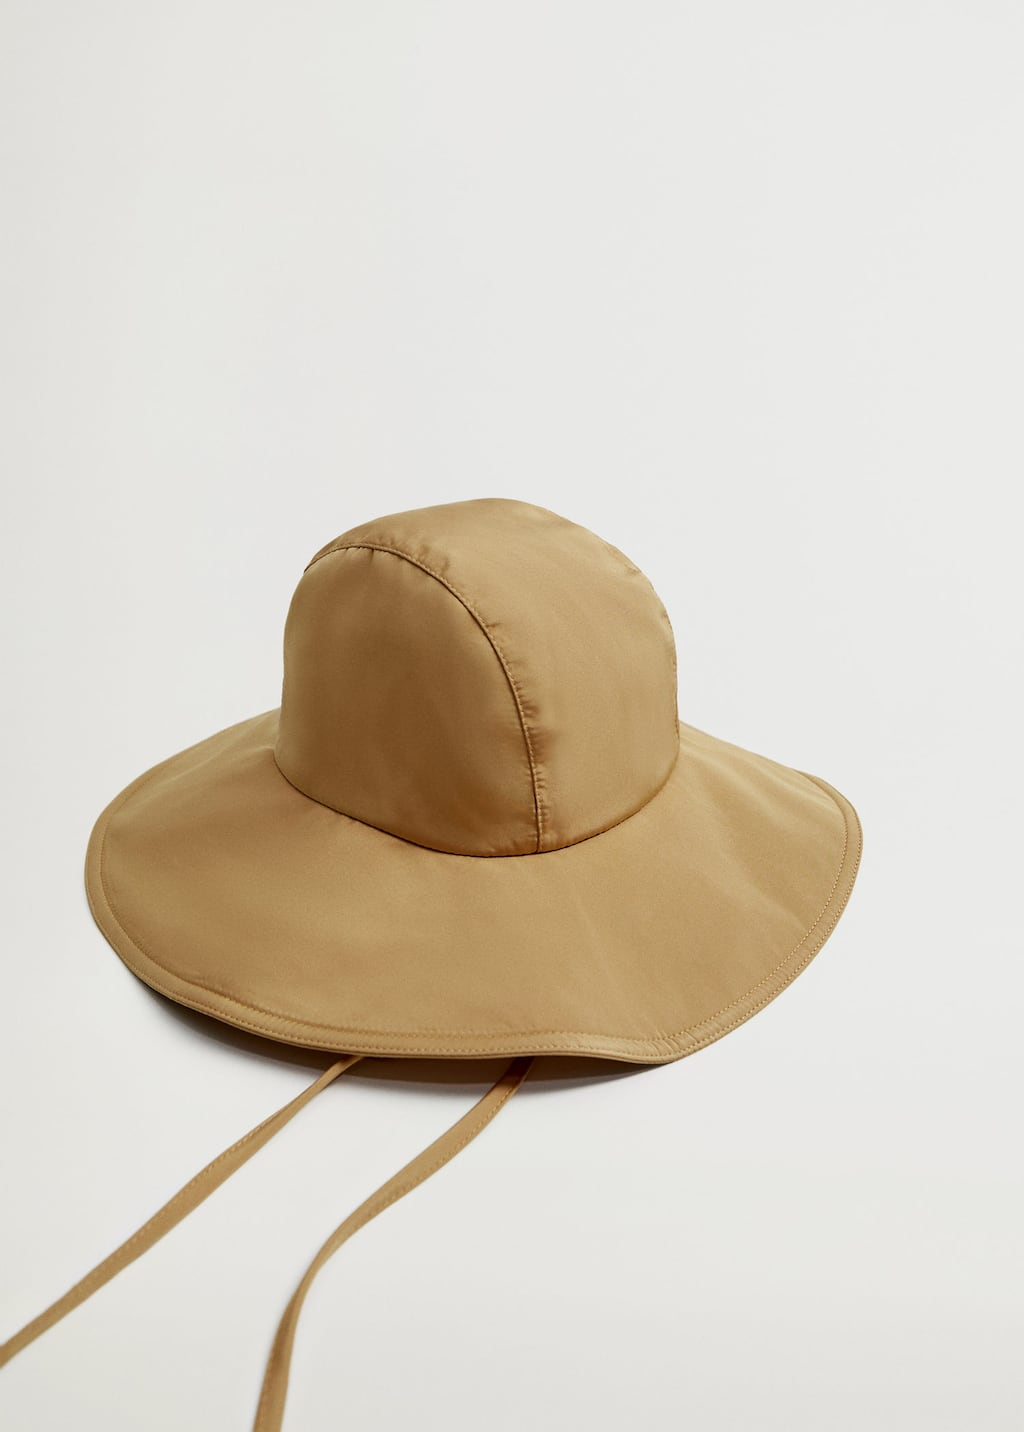 Bucket hat with straps - Details of the article 2